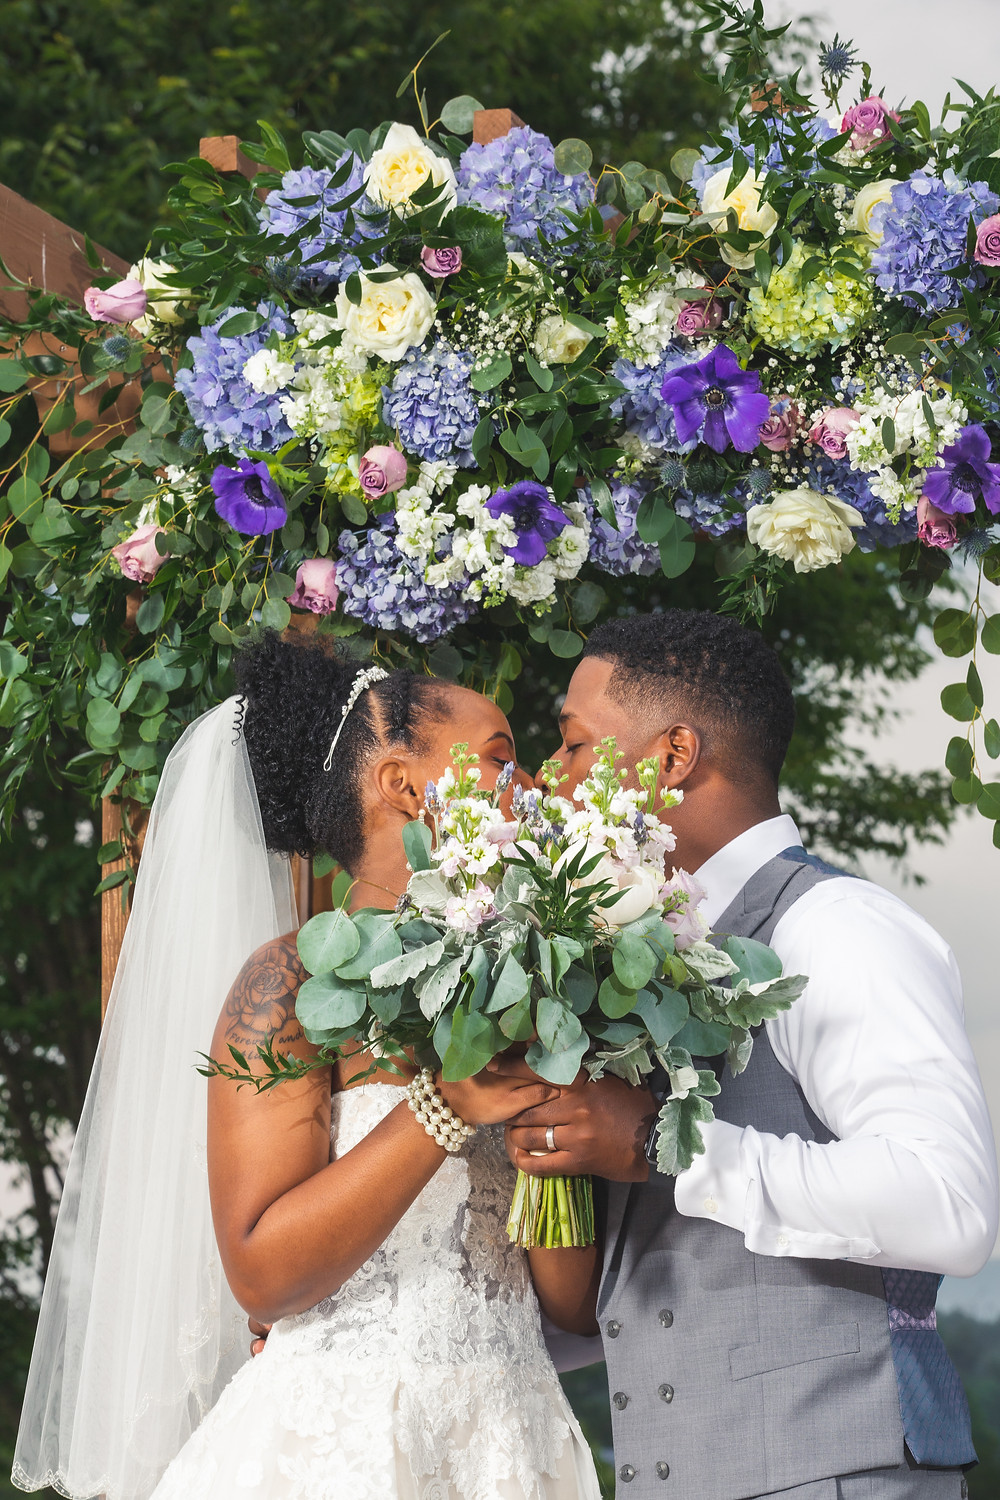 The bride and groom share a kiss behind the bouquet from The Faded Poppy at Crosskeys Vineyards in Mt. Crawford, Virginia.